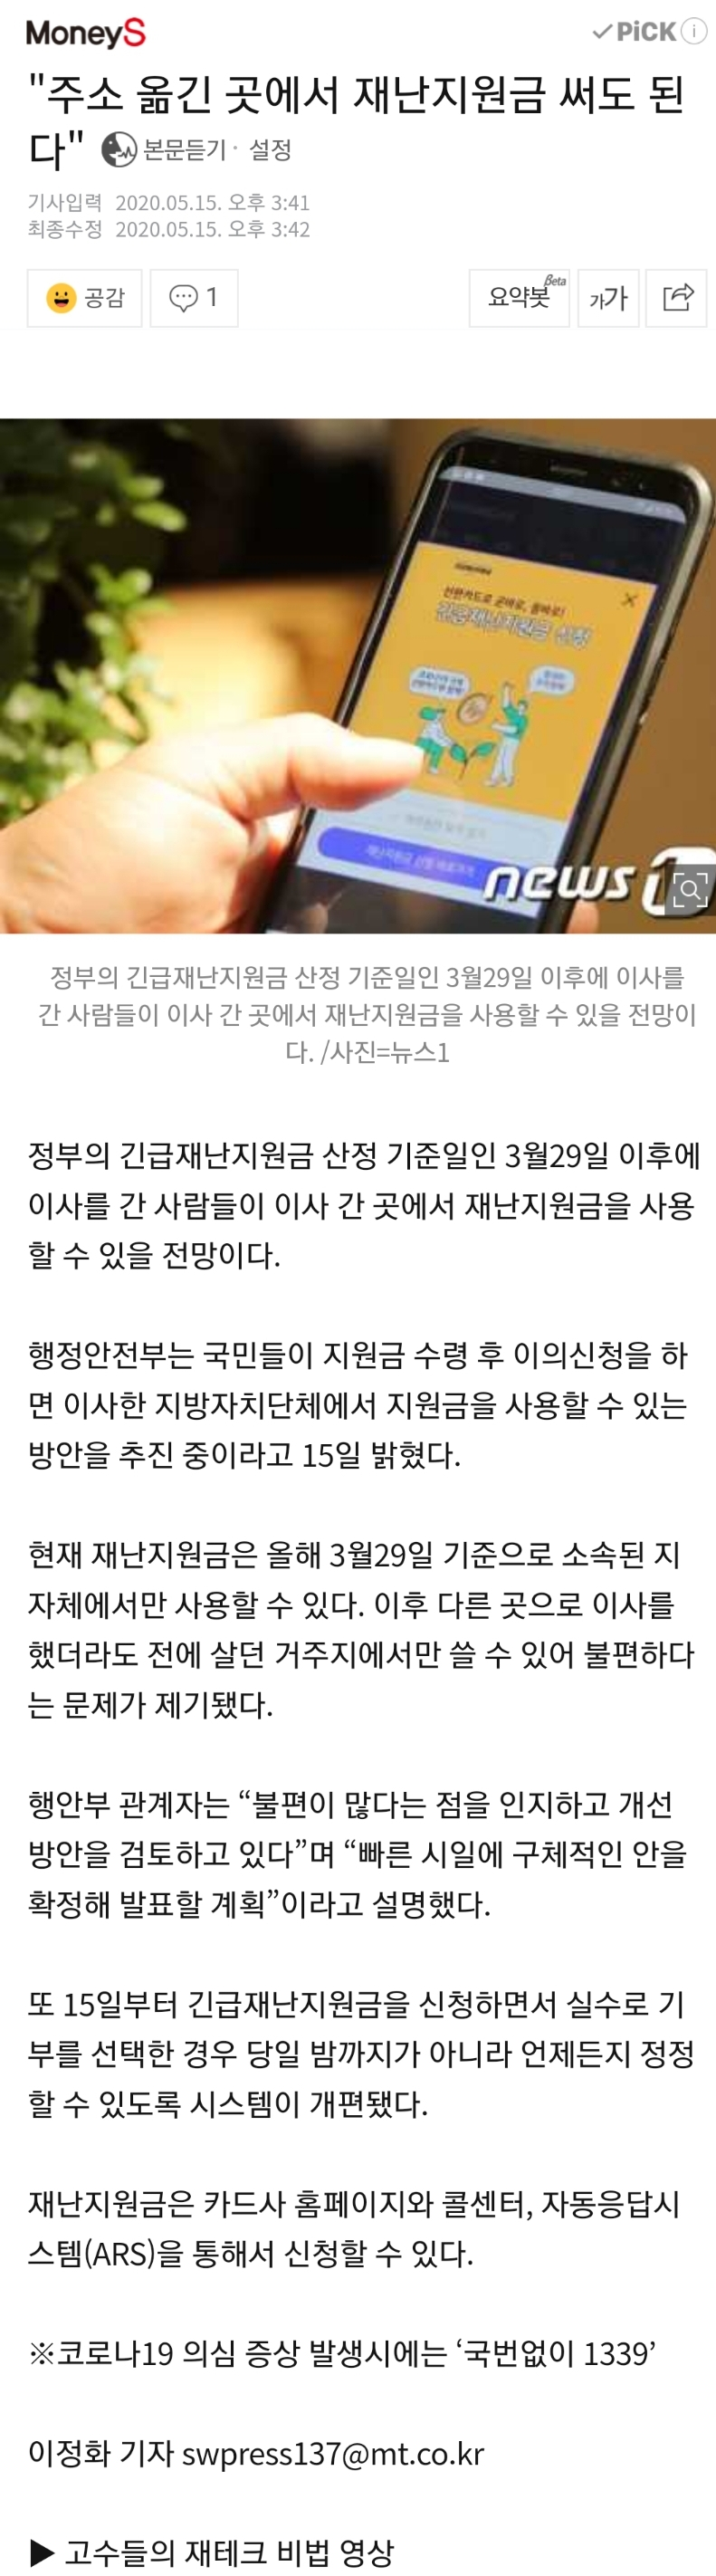 Screenshot_20200515-172325_NAVER.jpg